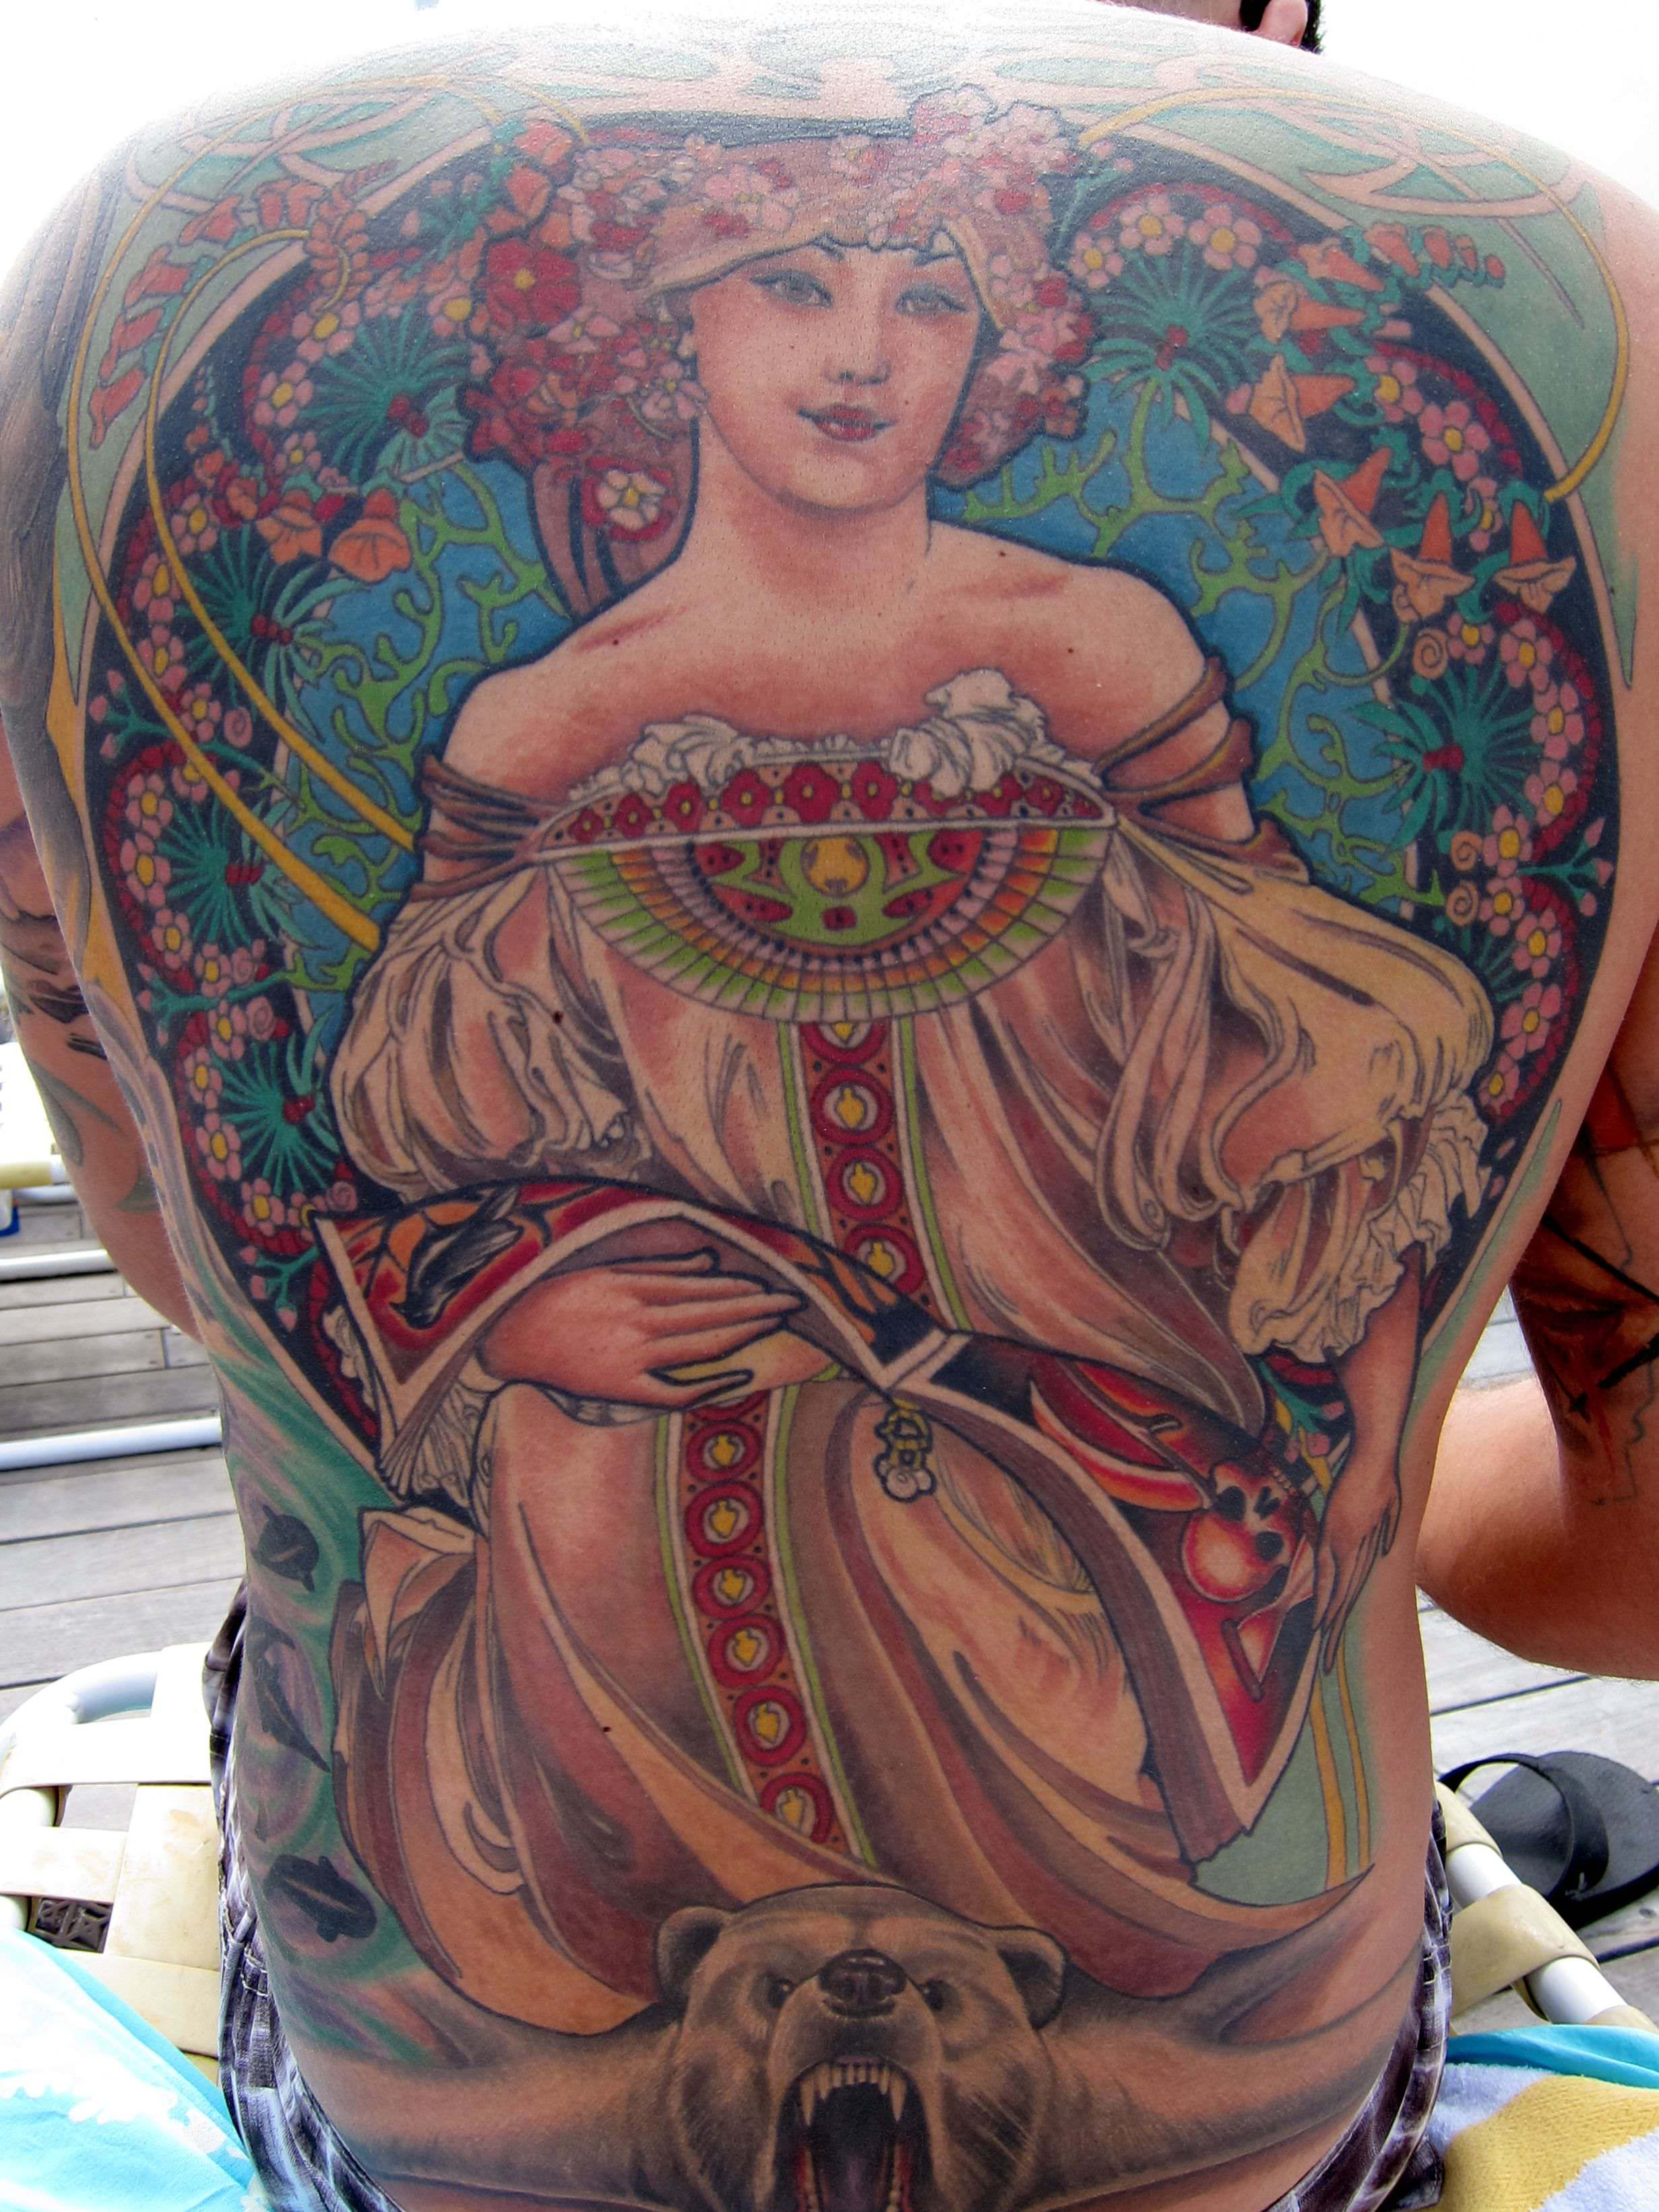 The bright colors and intricate details of Art Deco tattoos are appealing up close and from a distance